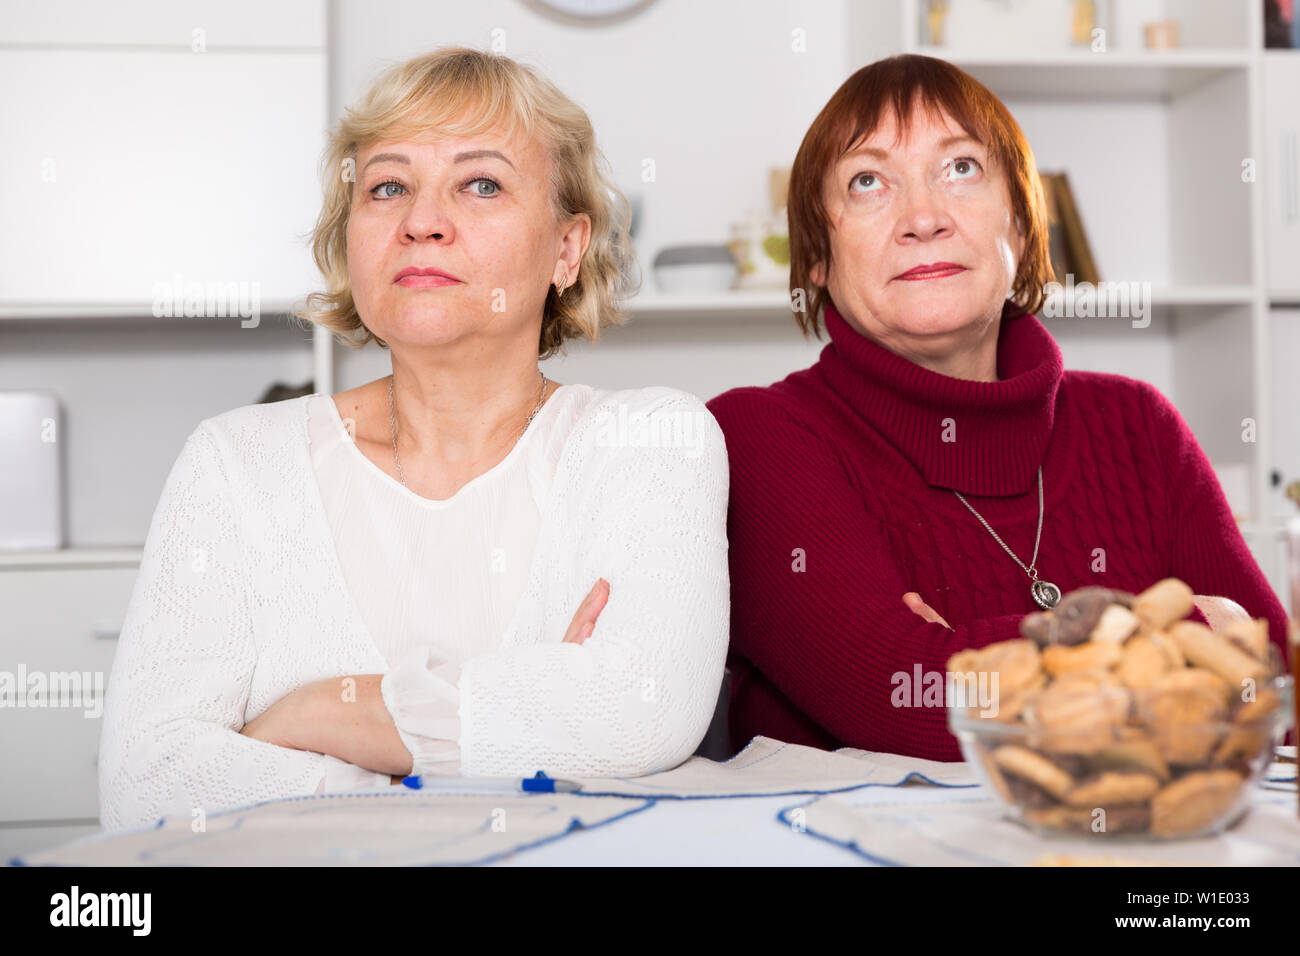 Pensioners females quarreling at kitchen near food at the table - Stock Image